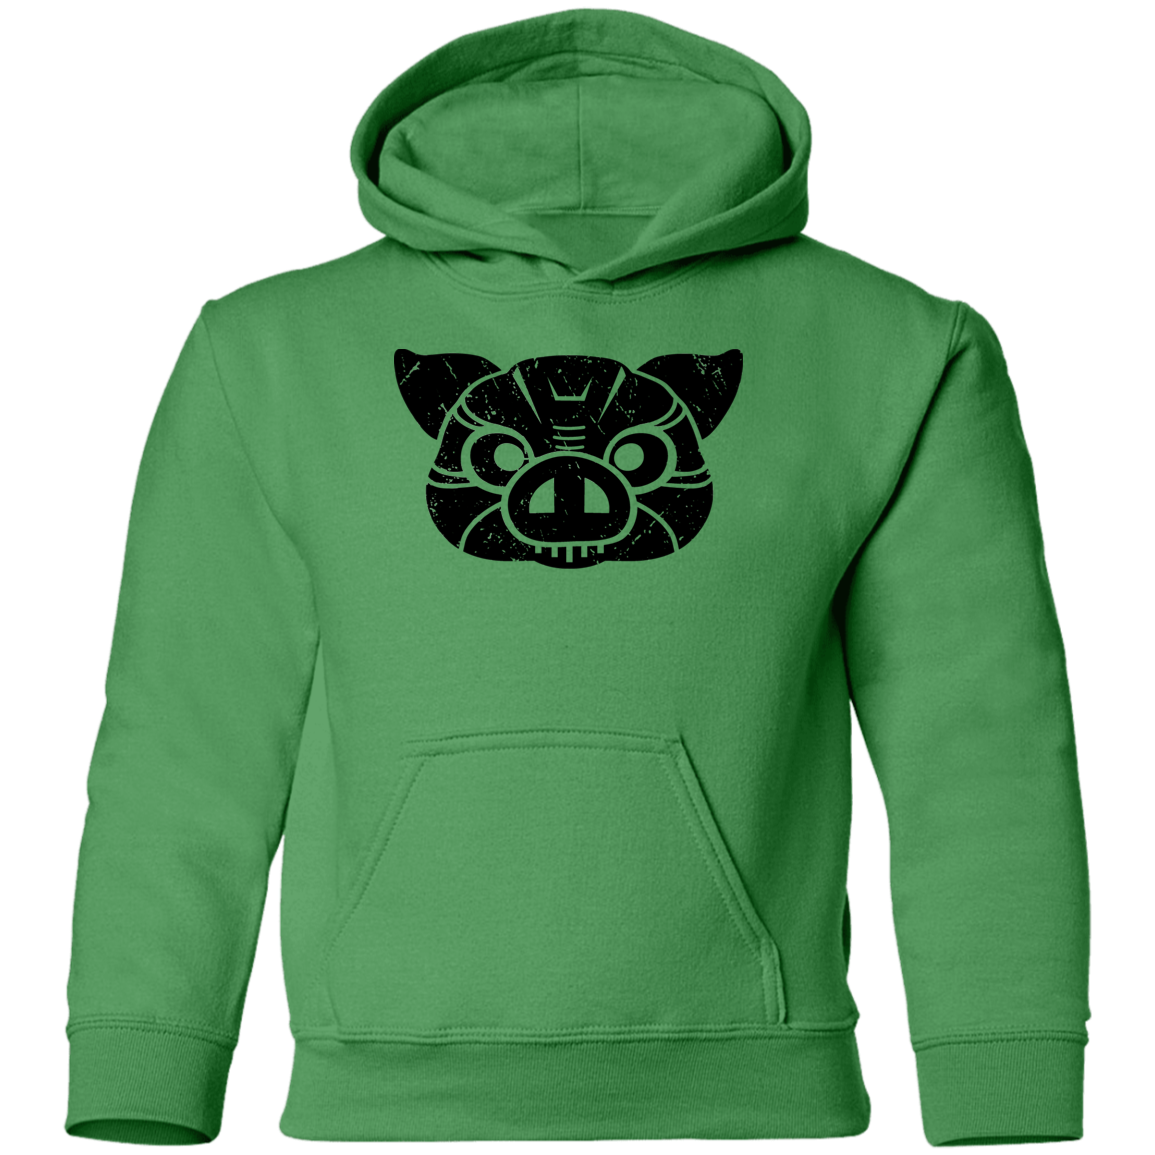 Black Distressed Emblem Hoodies for Kids (Pig/Hoss)